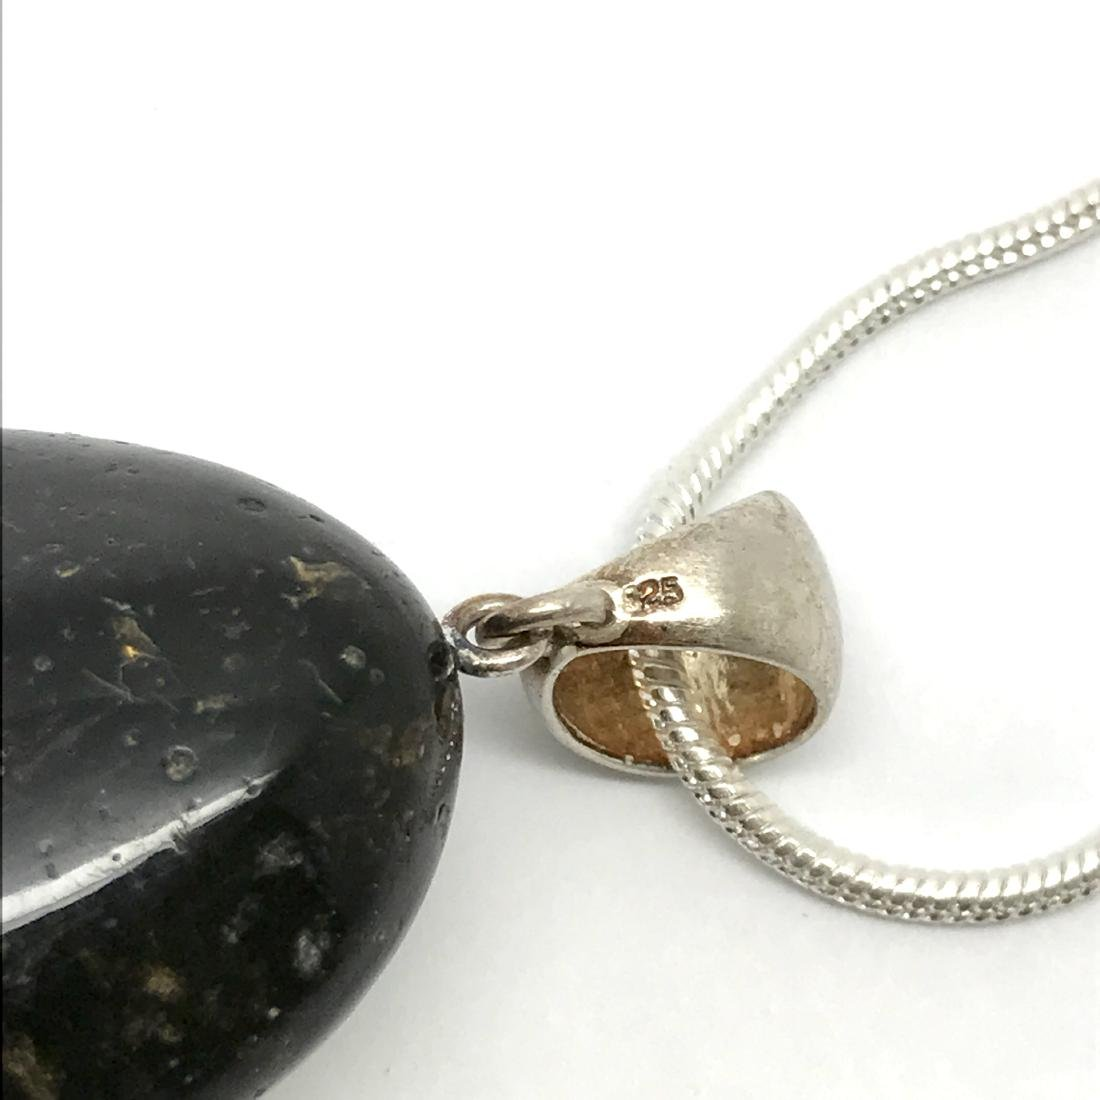 Vintage pendant amulet Baltic amber silver and chain - 3